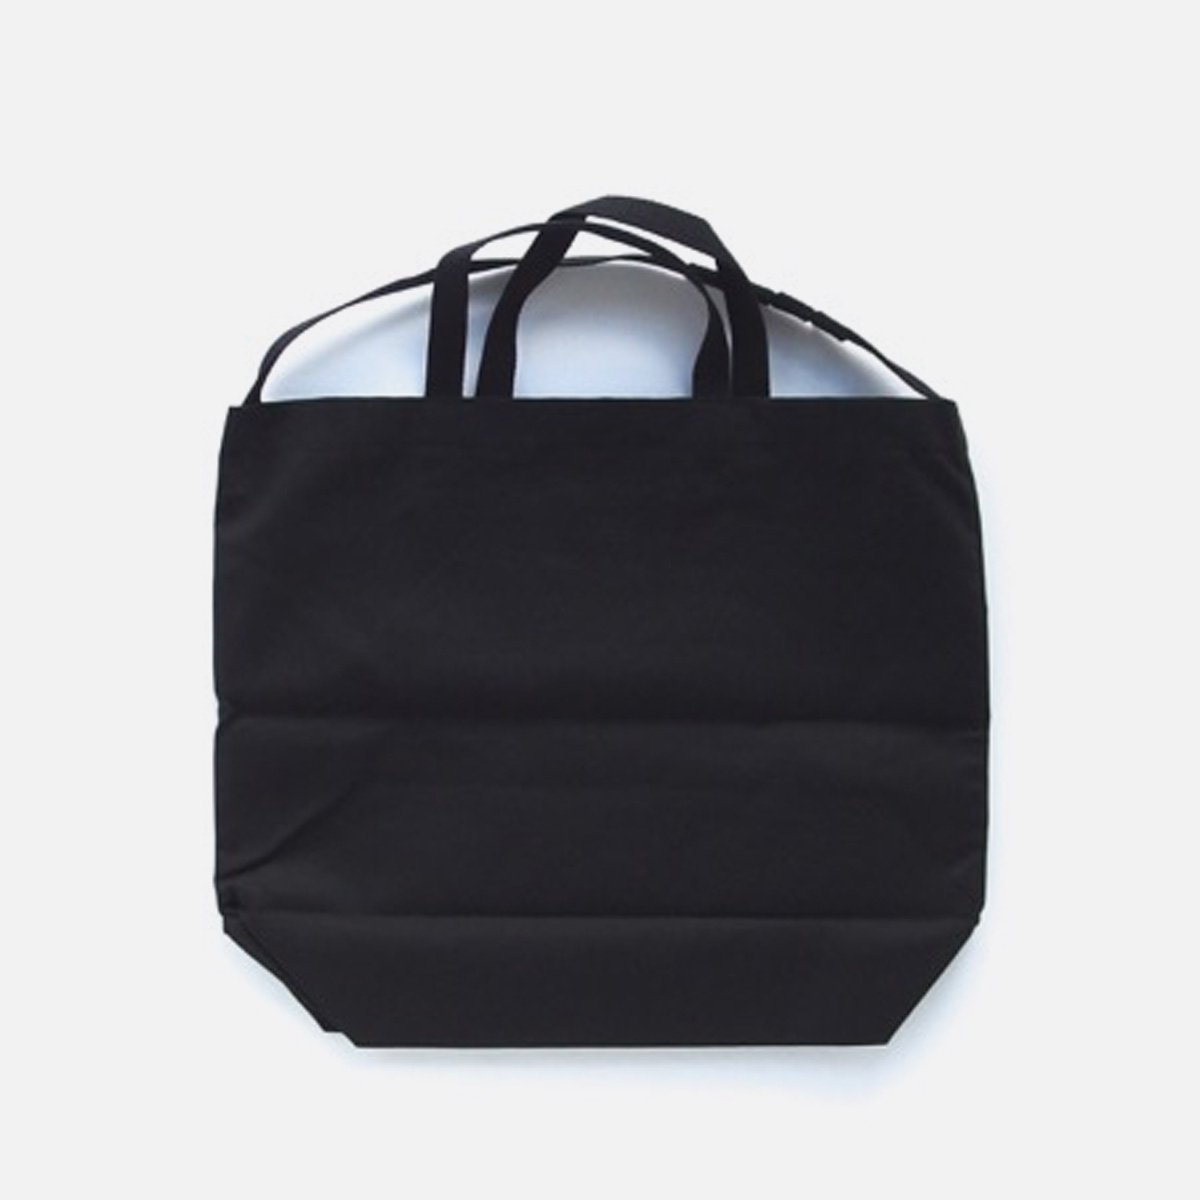 Engineered Garments Carry All Tote - Field Expedient  (Black)2